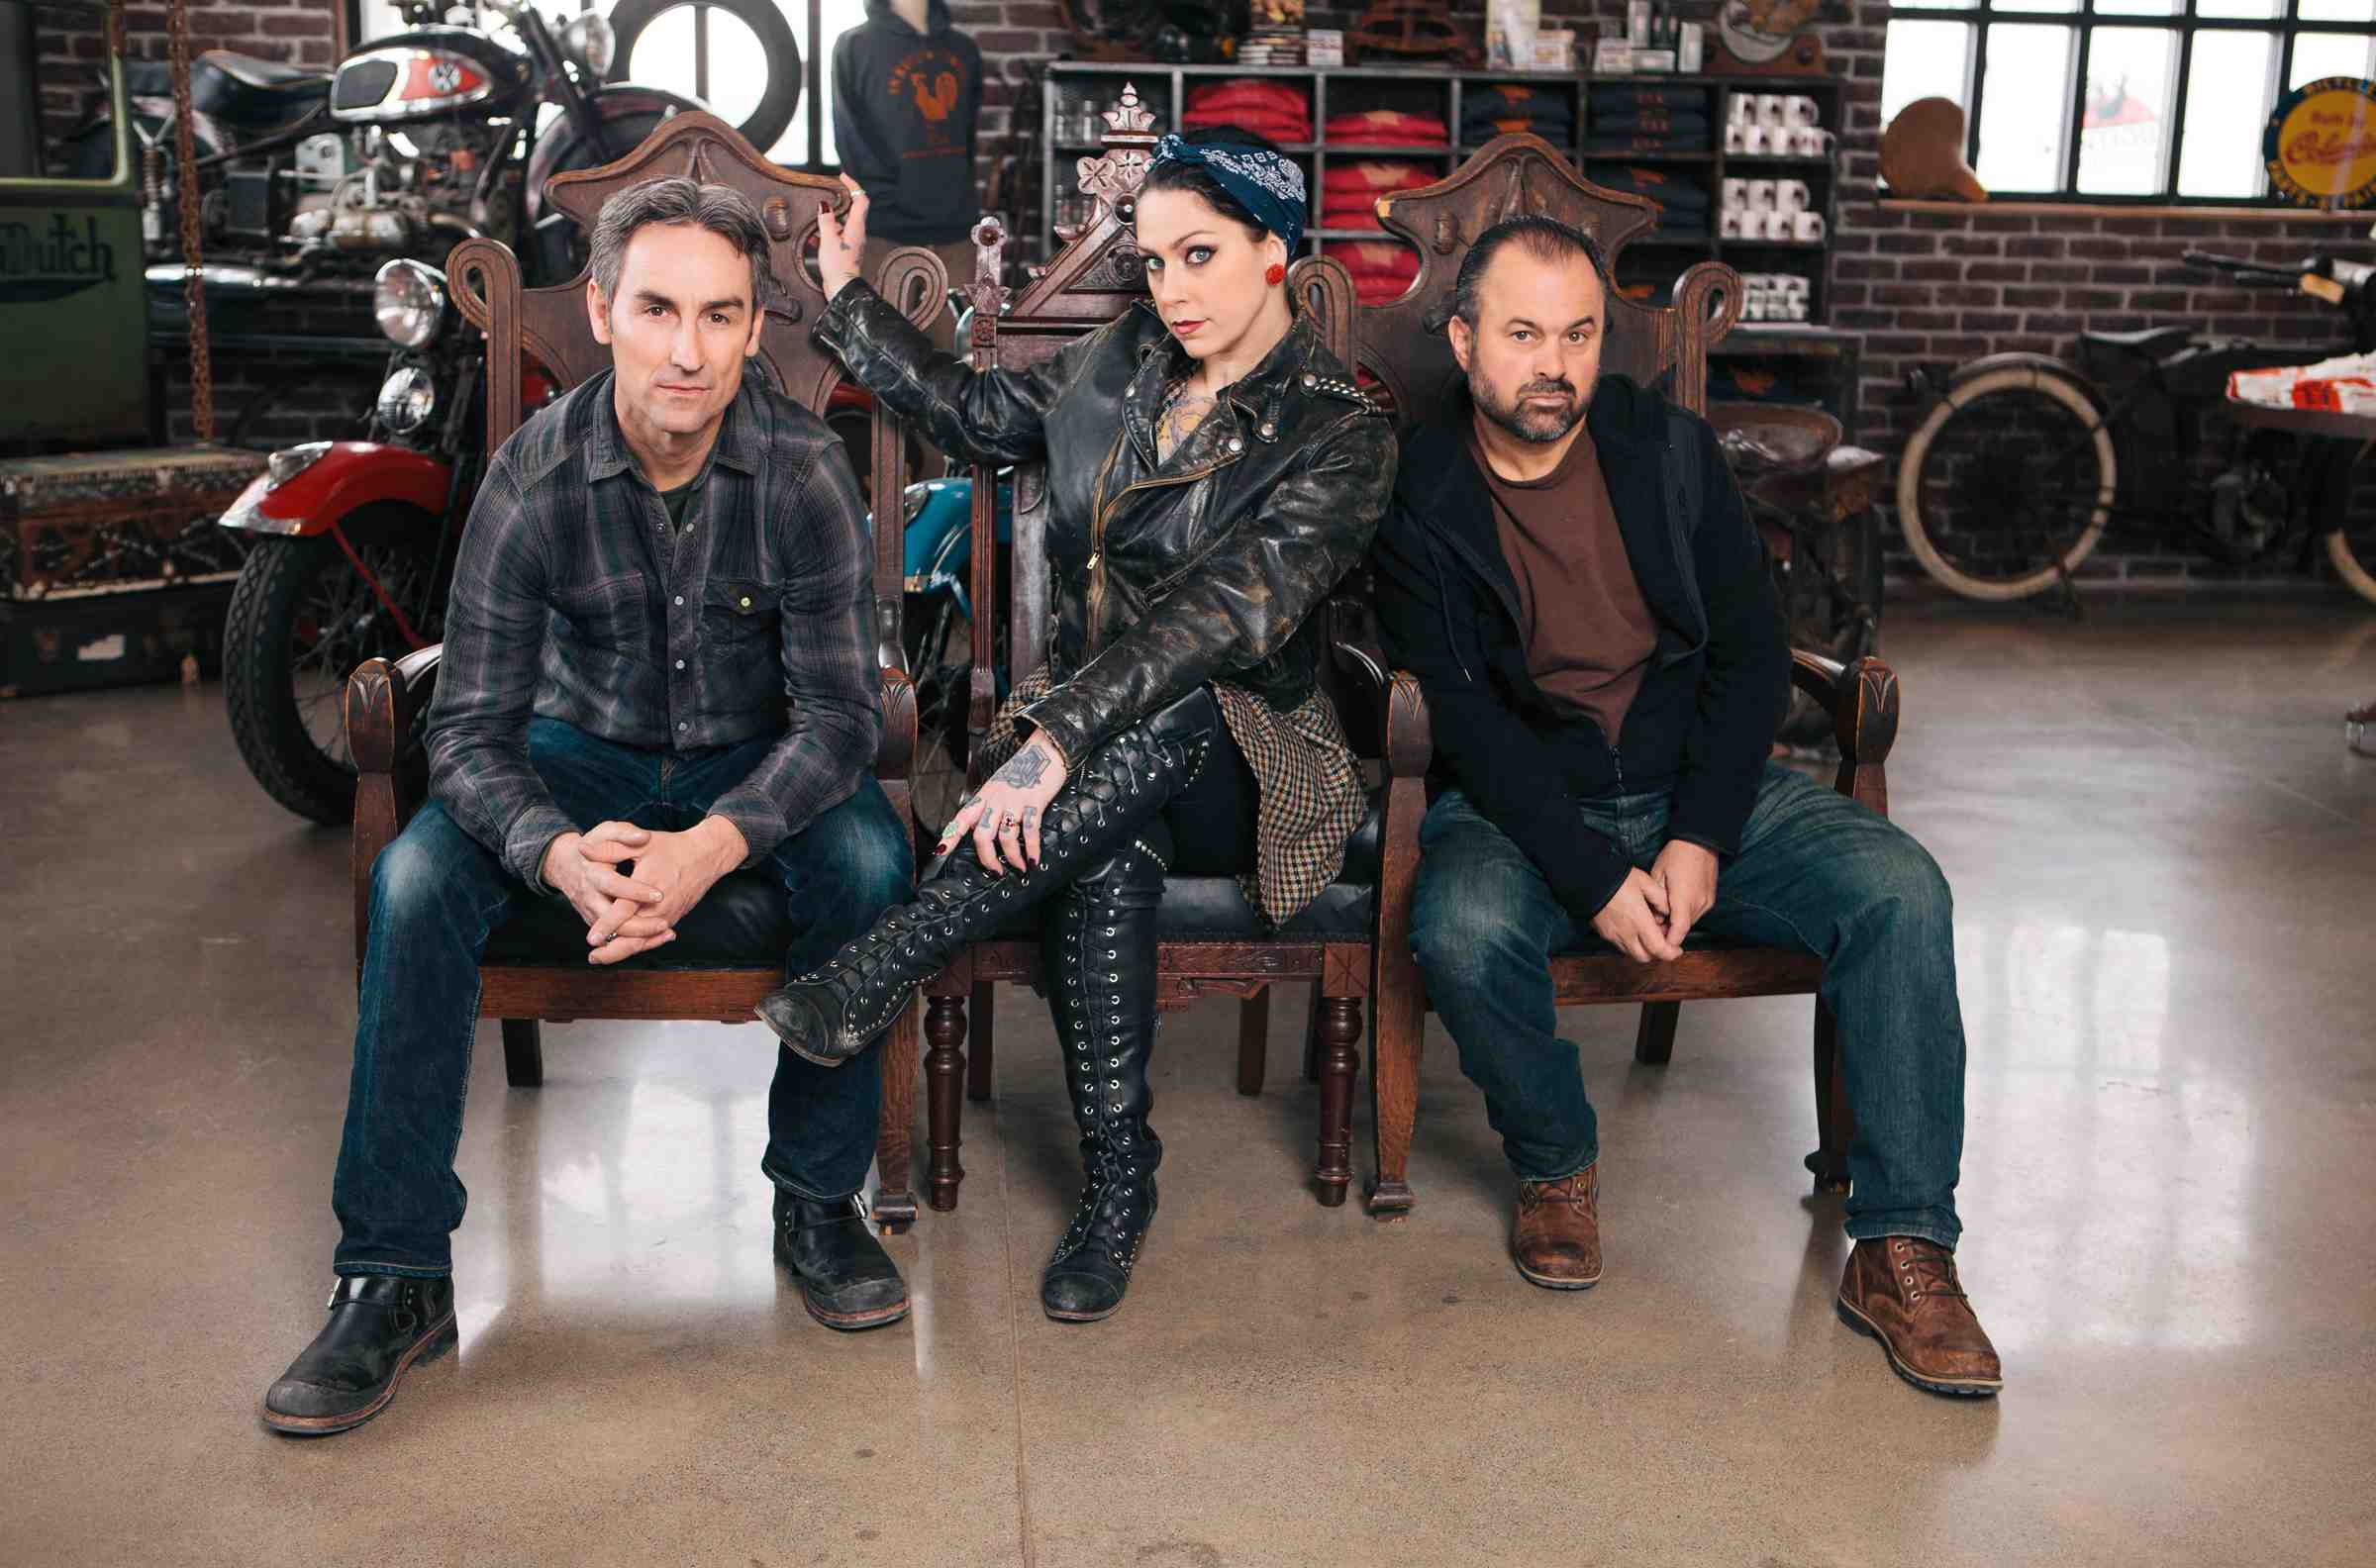 American Pickers Pikeville Nc rocky mount area news | rocky mount area | rocky mount area